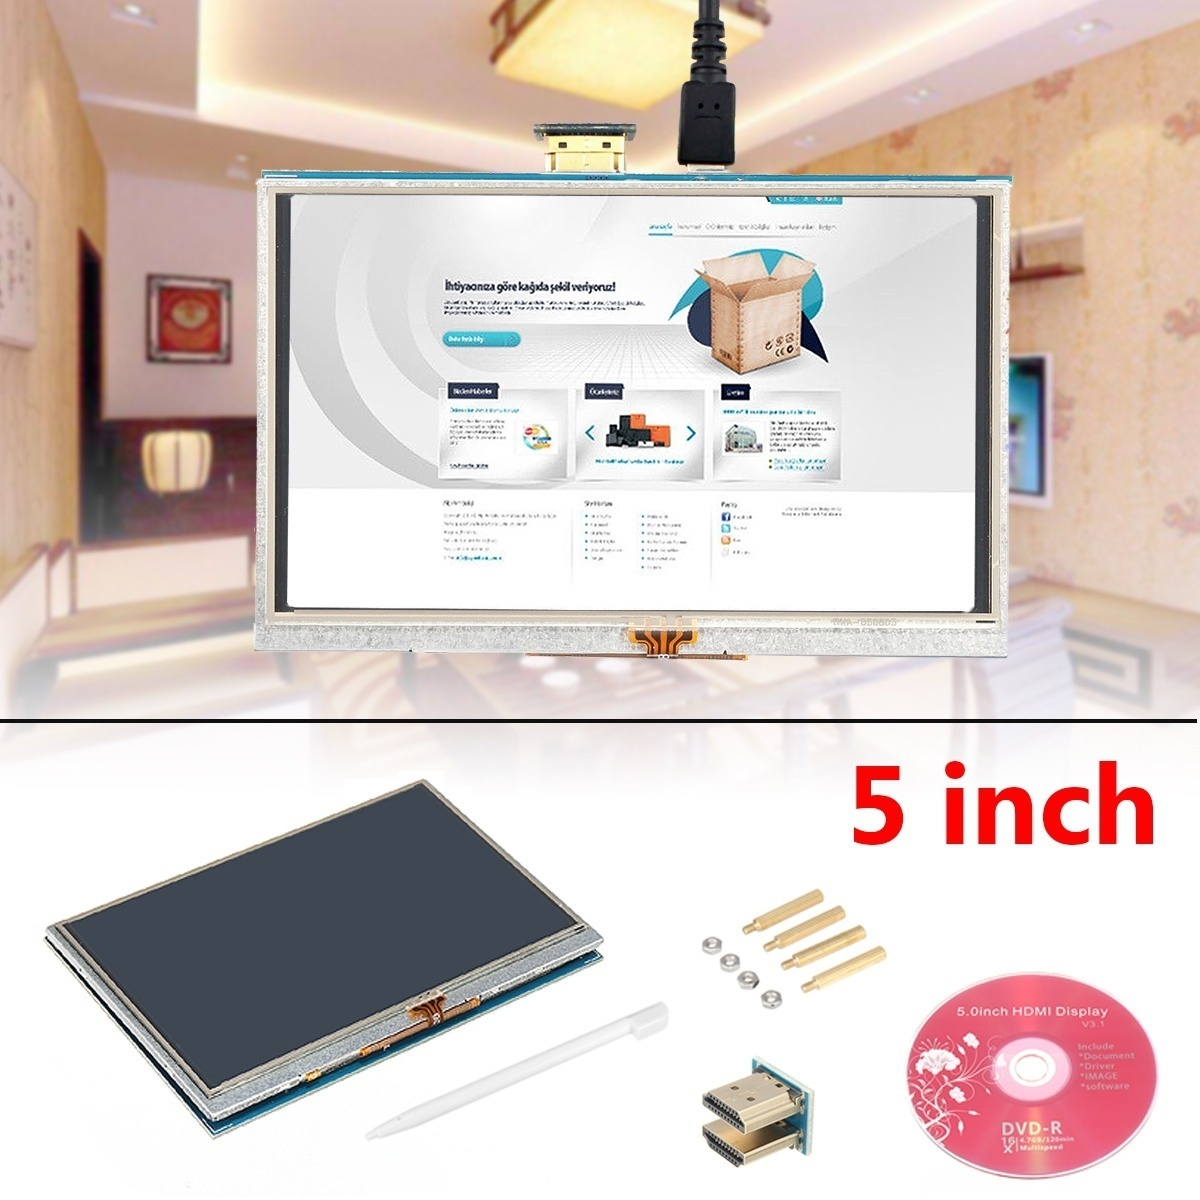 800X480 5 inch HDMI Touch Screen TFT LCD Display Module For Raspberry Pi 2  3 Model B